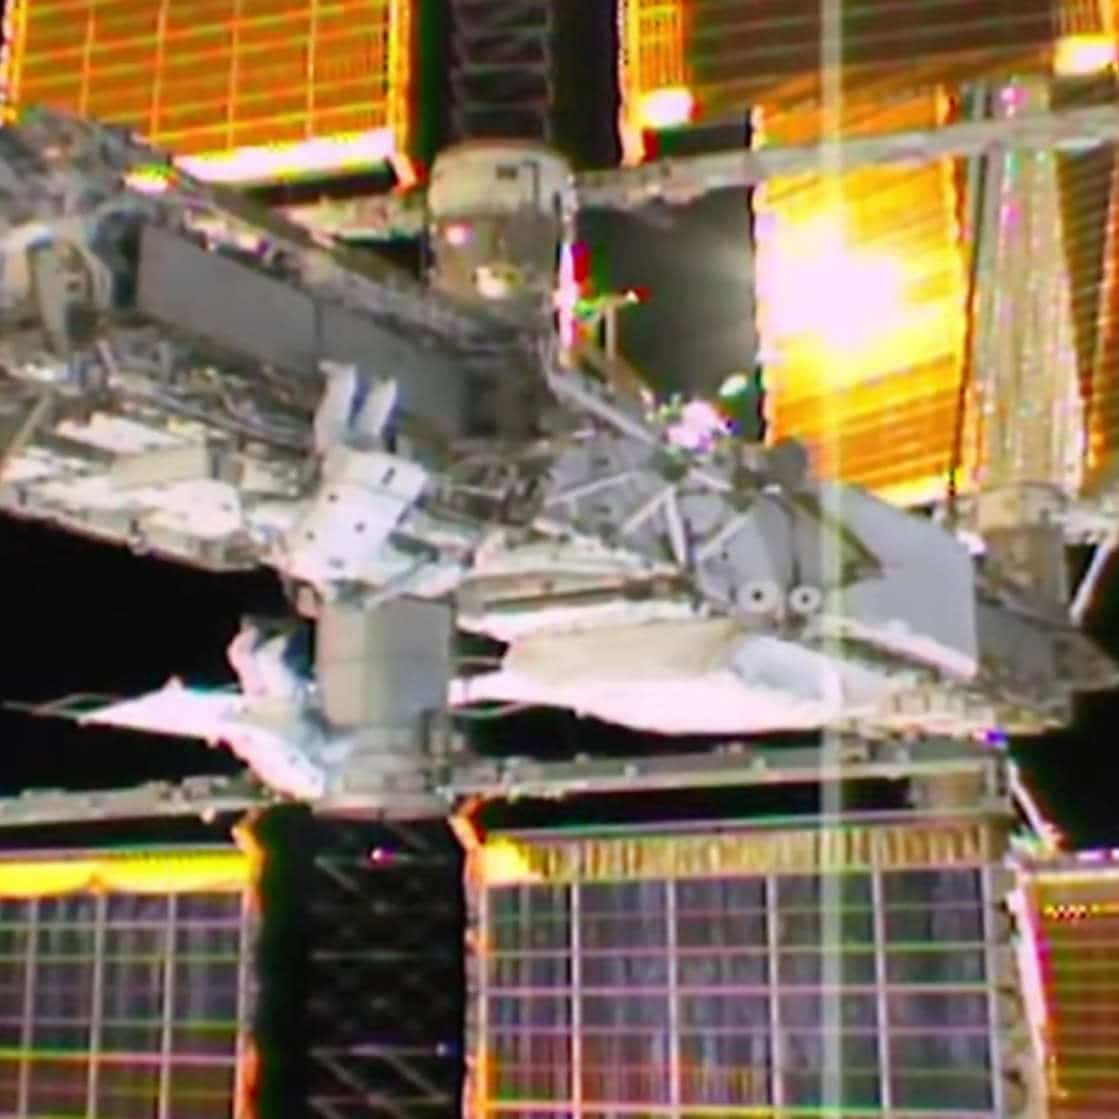 Spacewalkers carry out space station power system upgrades